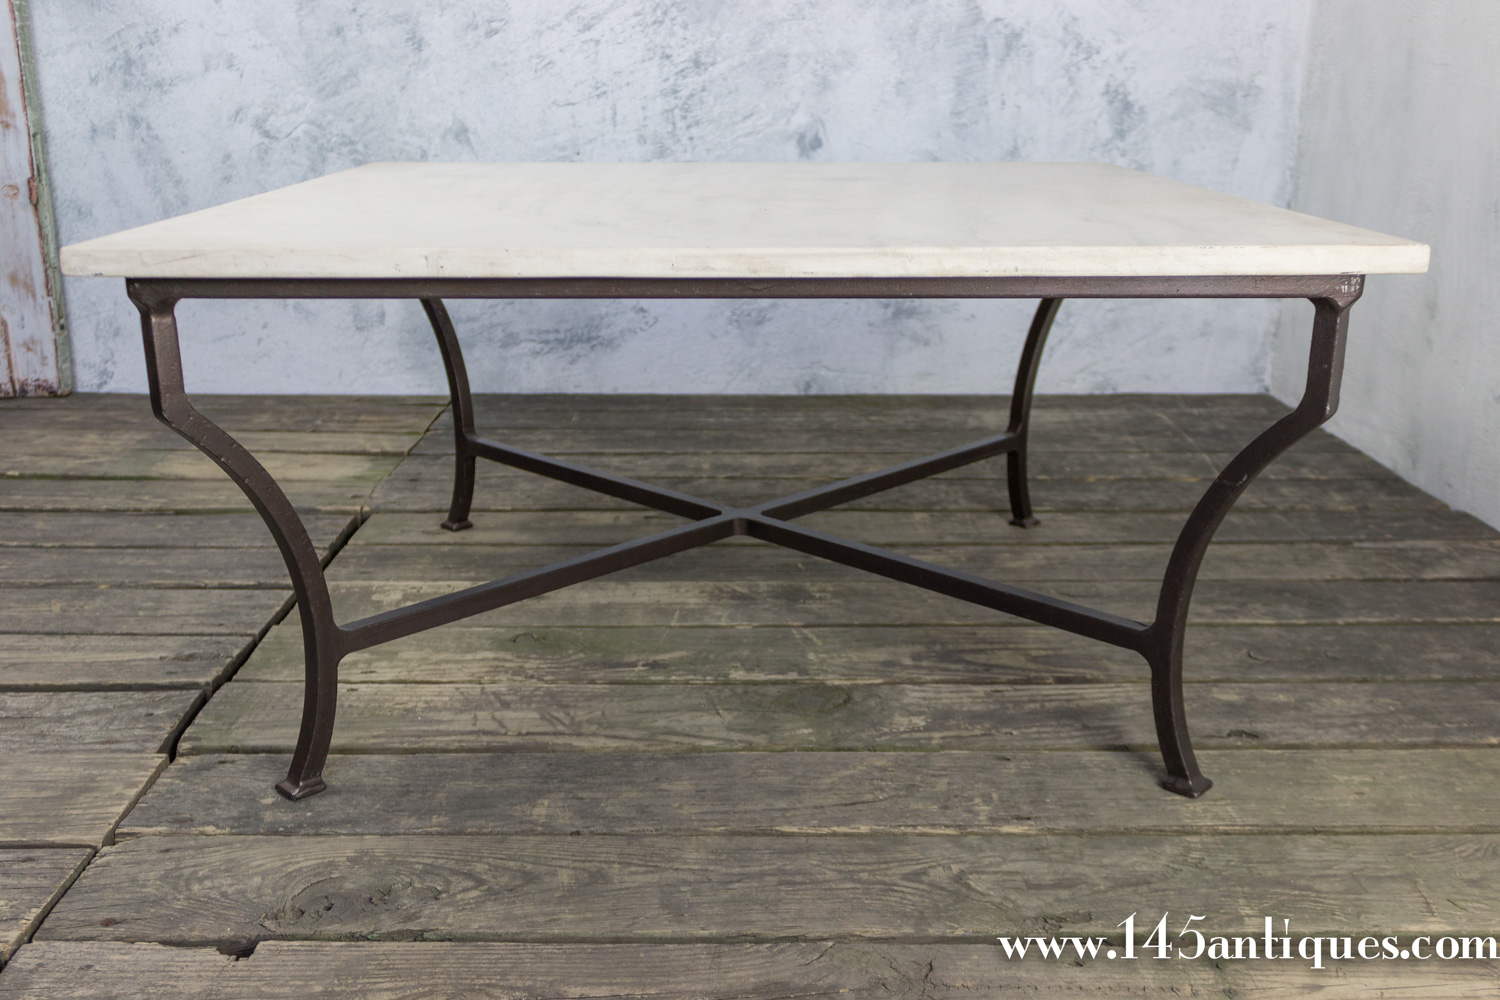 Contemporary Square Marble Iron Coffee Table 145 Antiques